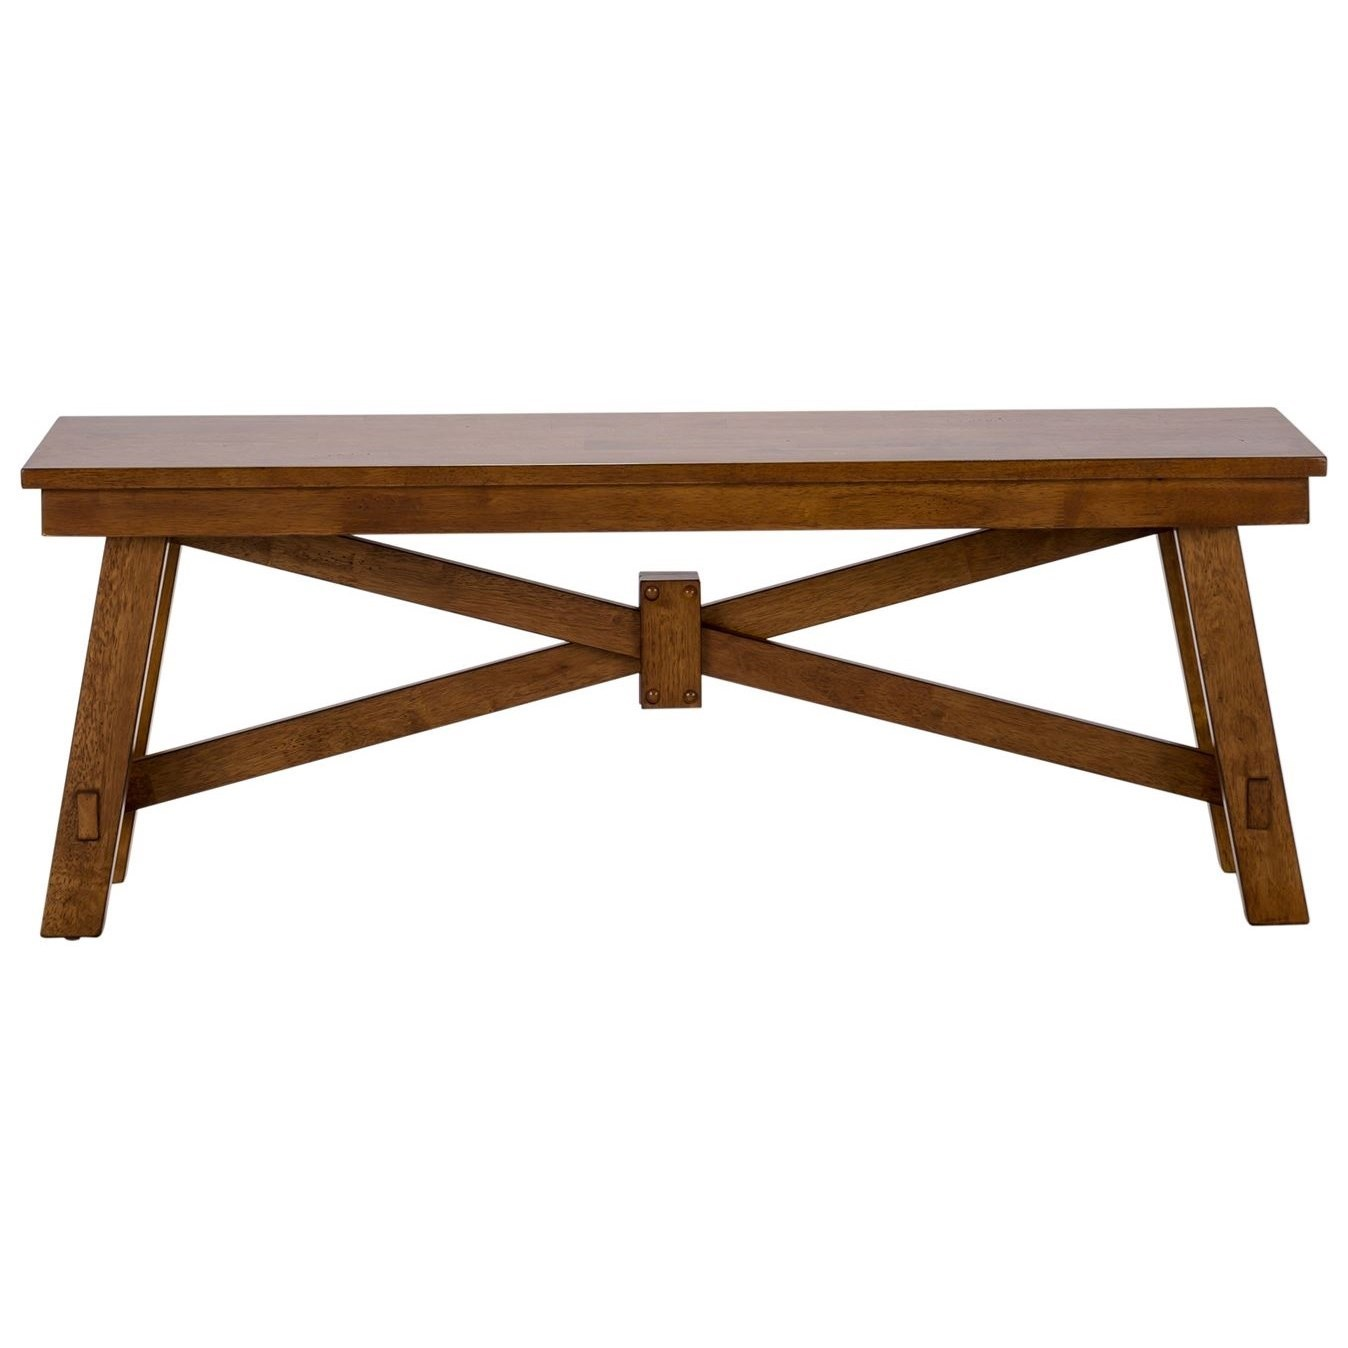 Creations II Wood Bench by Liberty Furniture at Dinette Depot